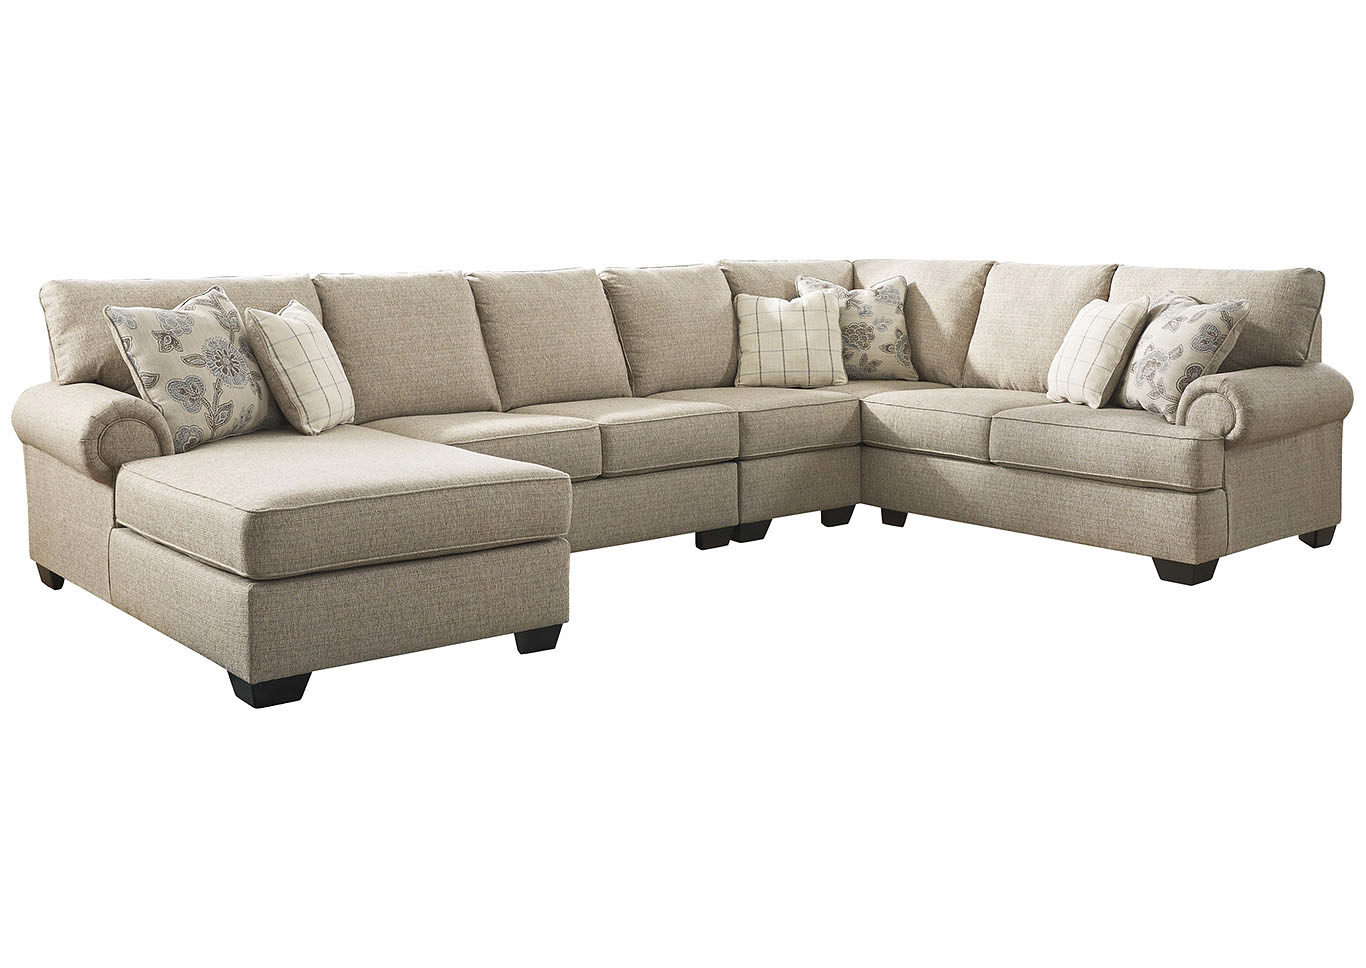 Adams Home Furnishings Baceno Hemp 4 Piece Sectional With Chaise